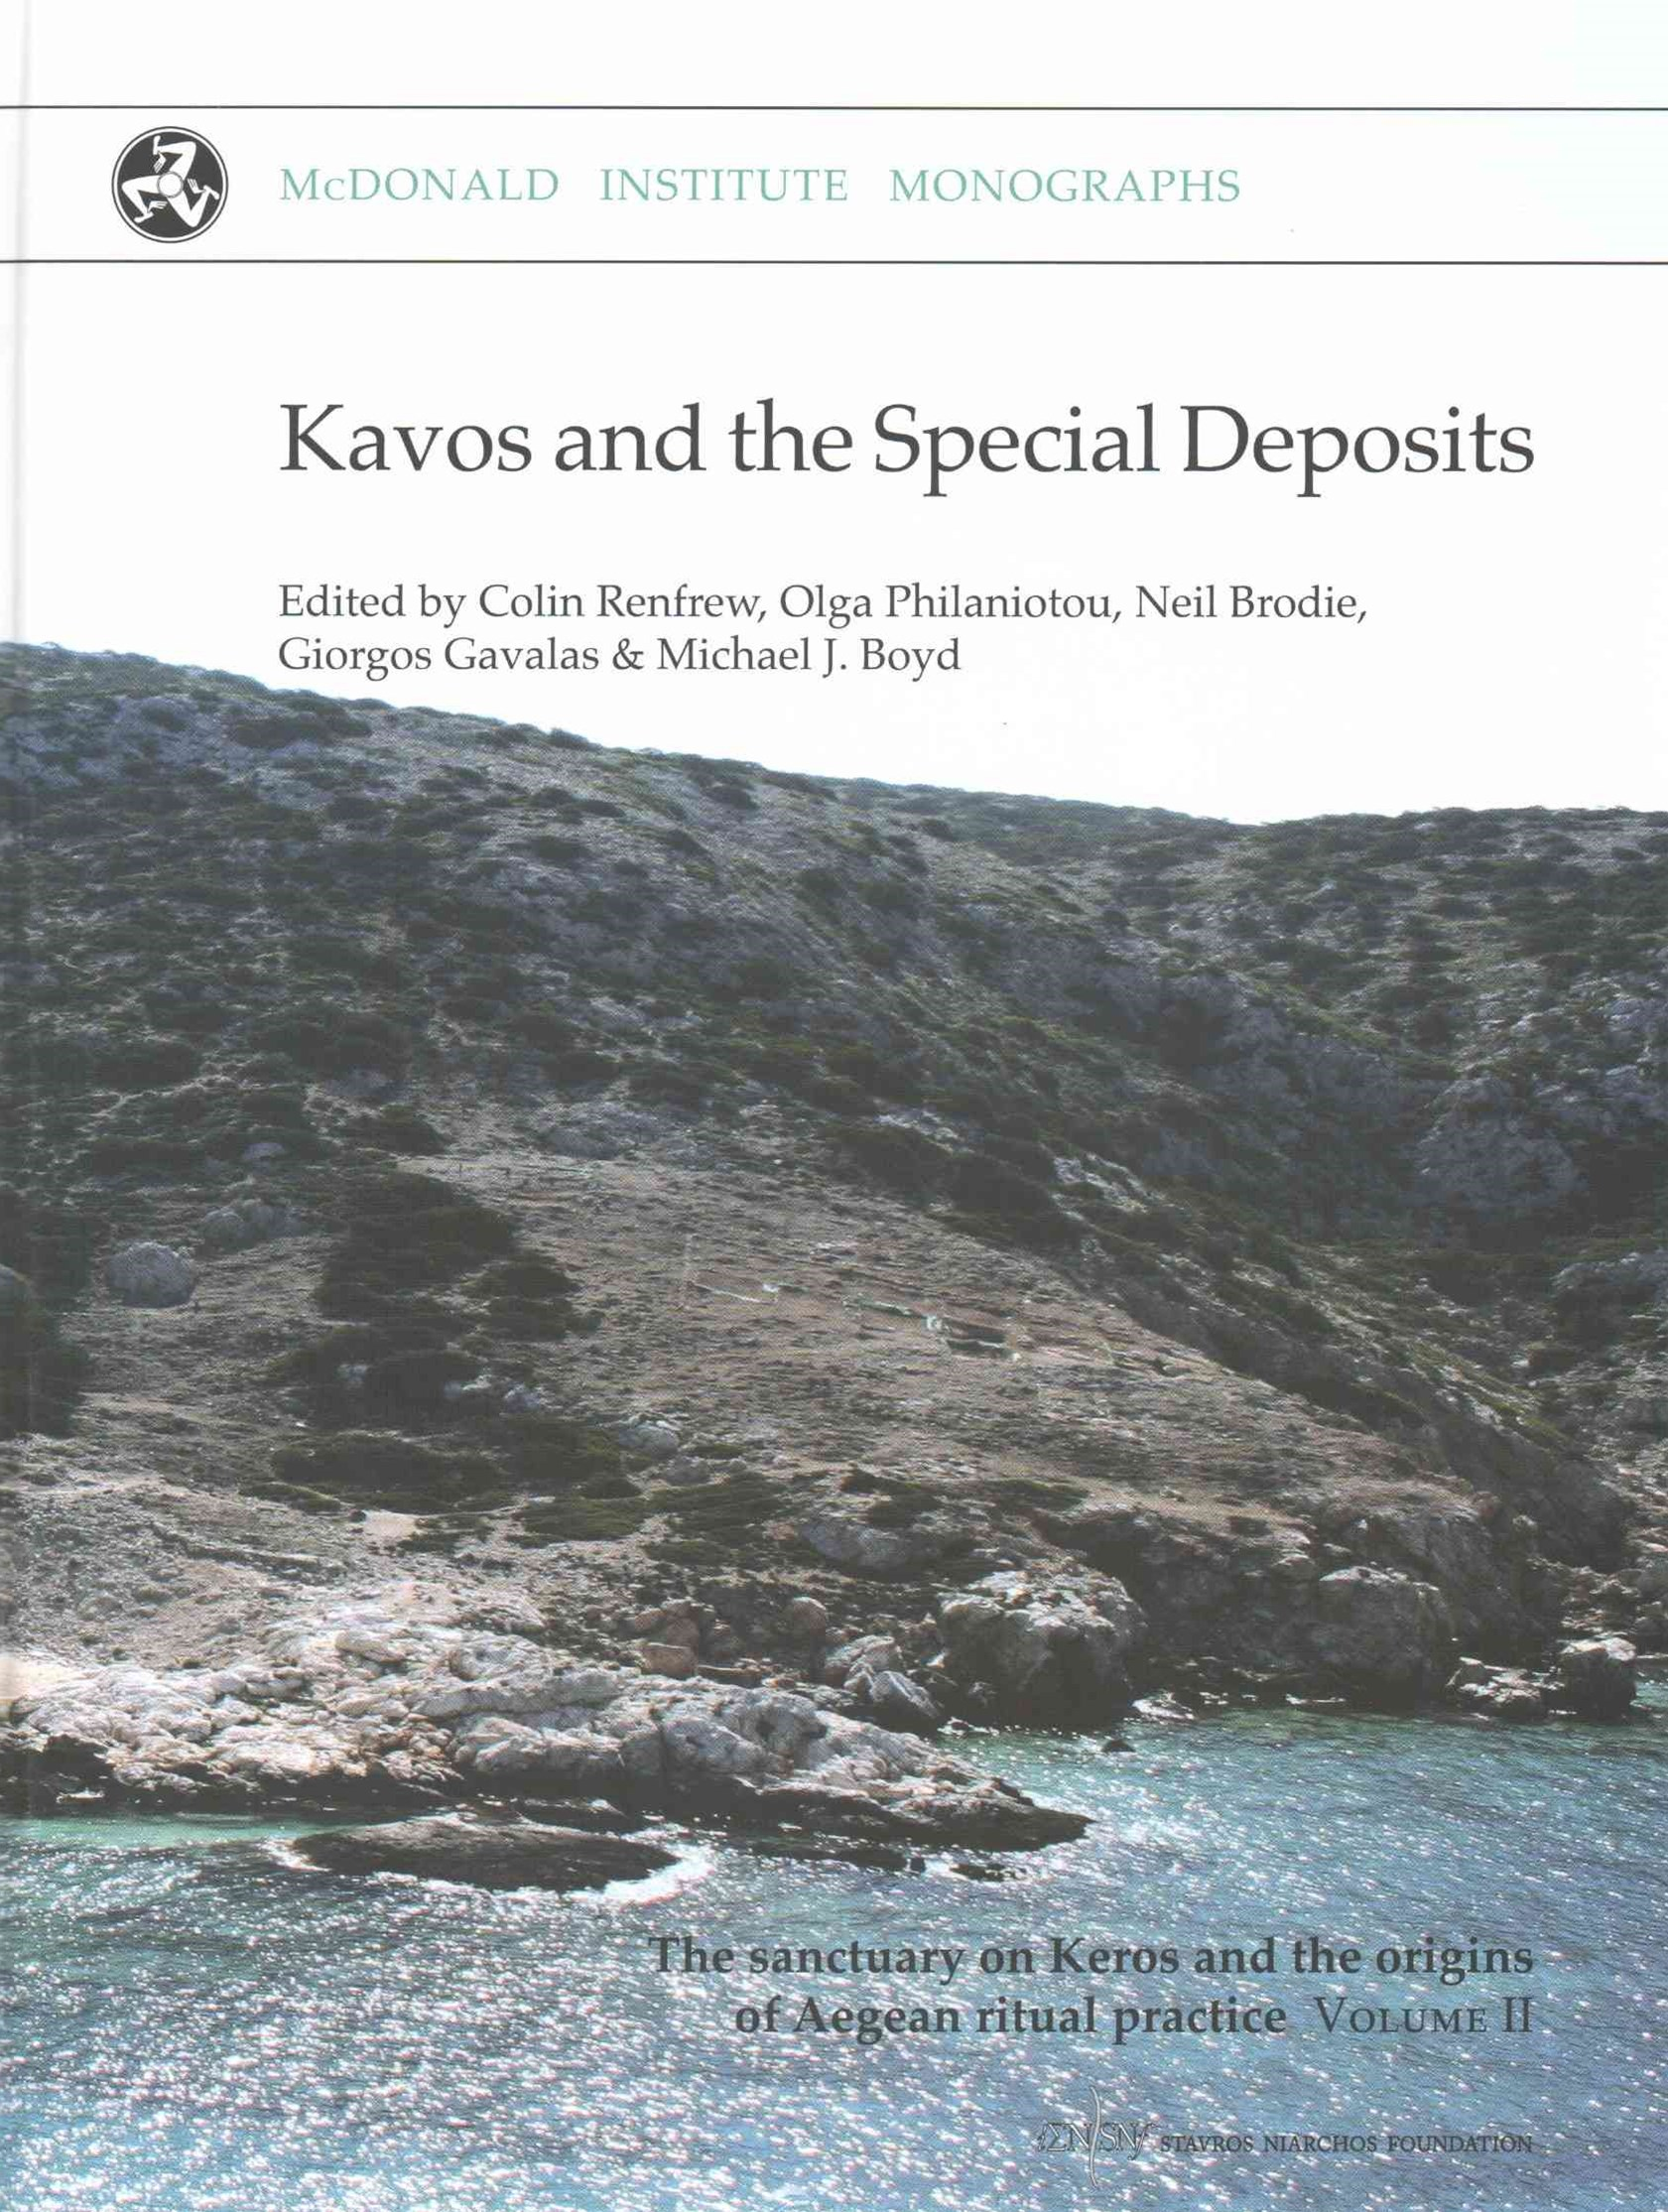 Kavos and the Speical Deposits